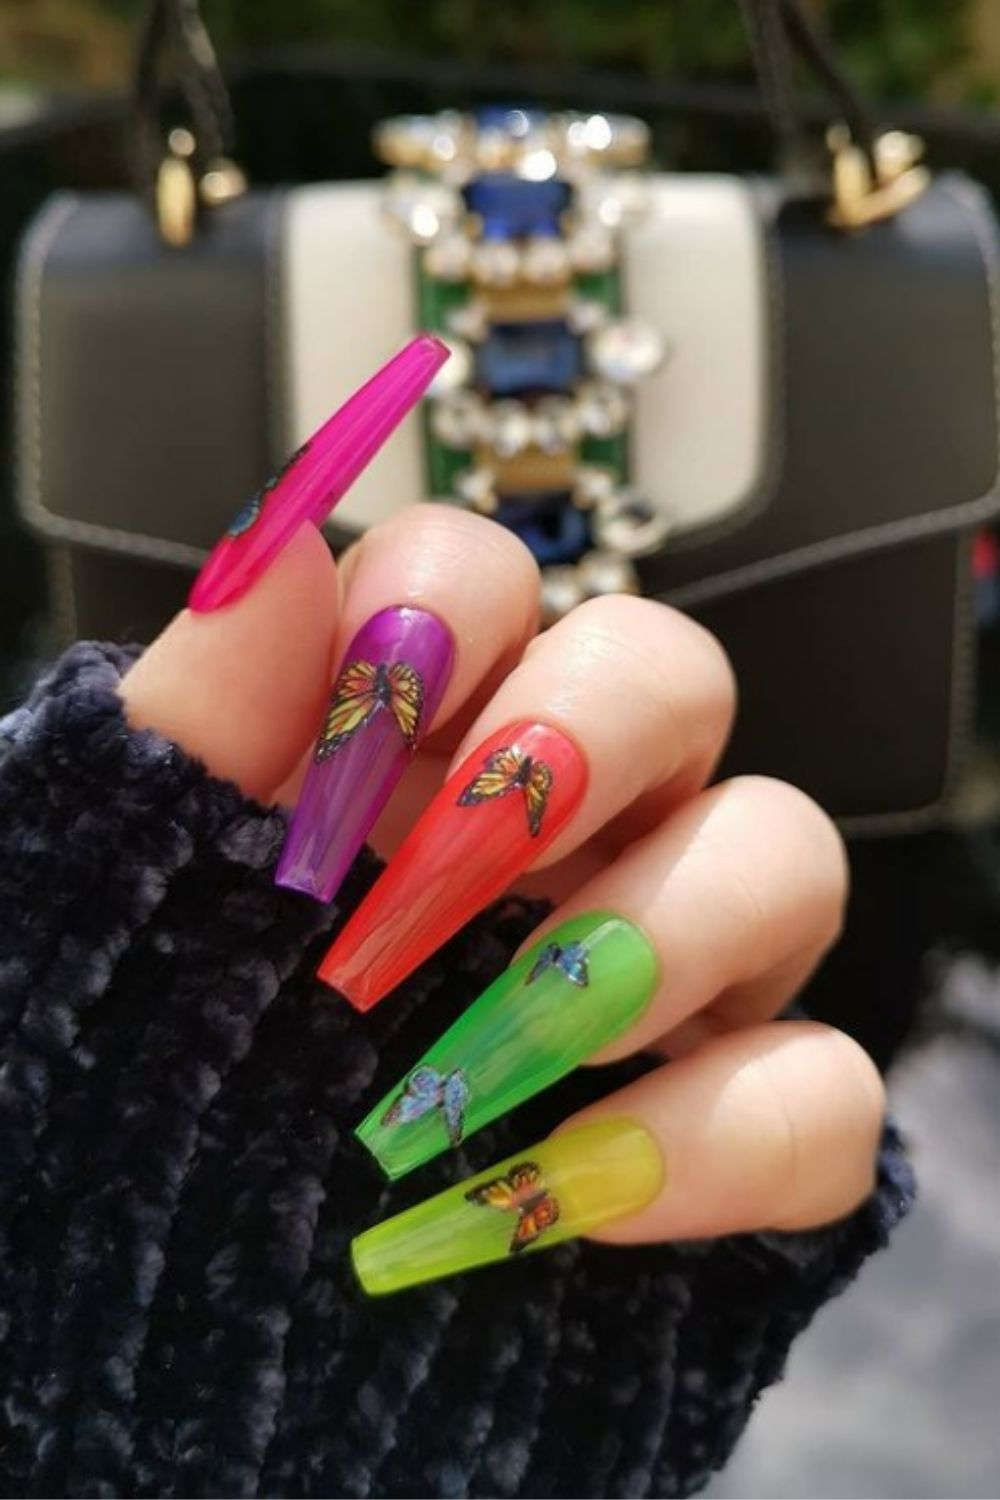 Coffin acrylic nails | The Hottest Nail Trends Of 2021-Coffin Nail Design